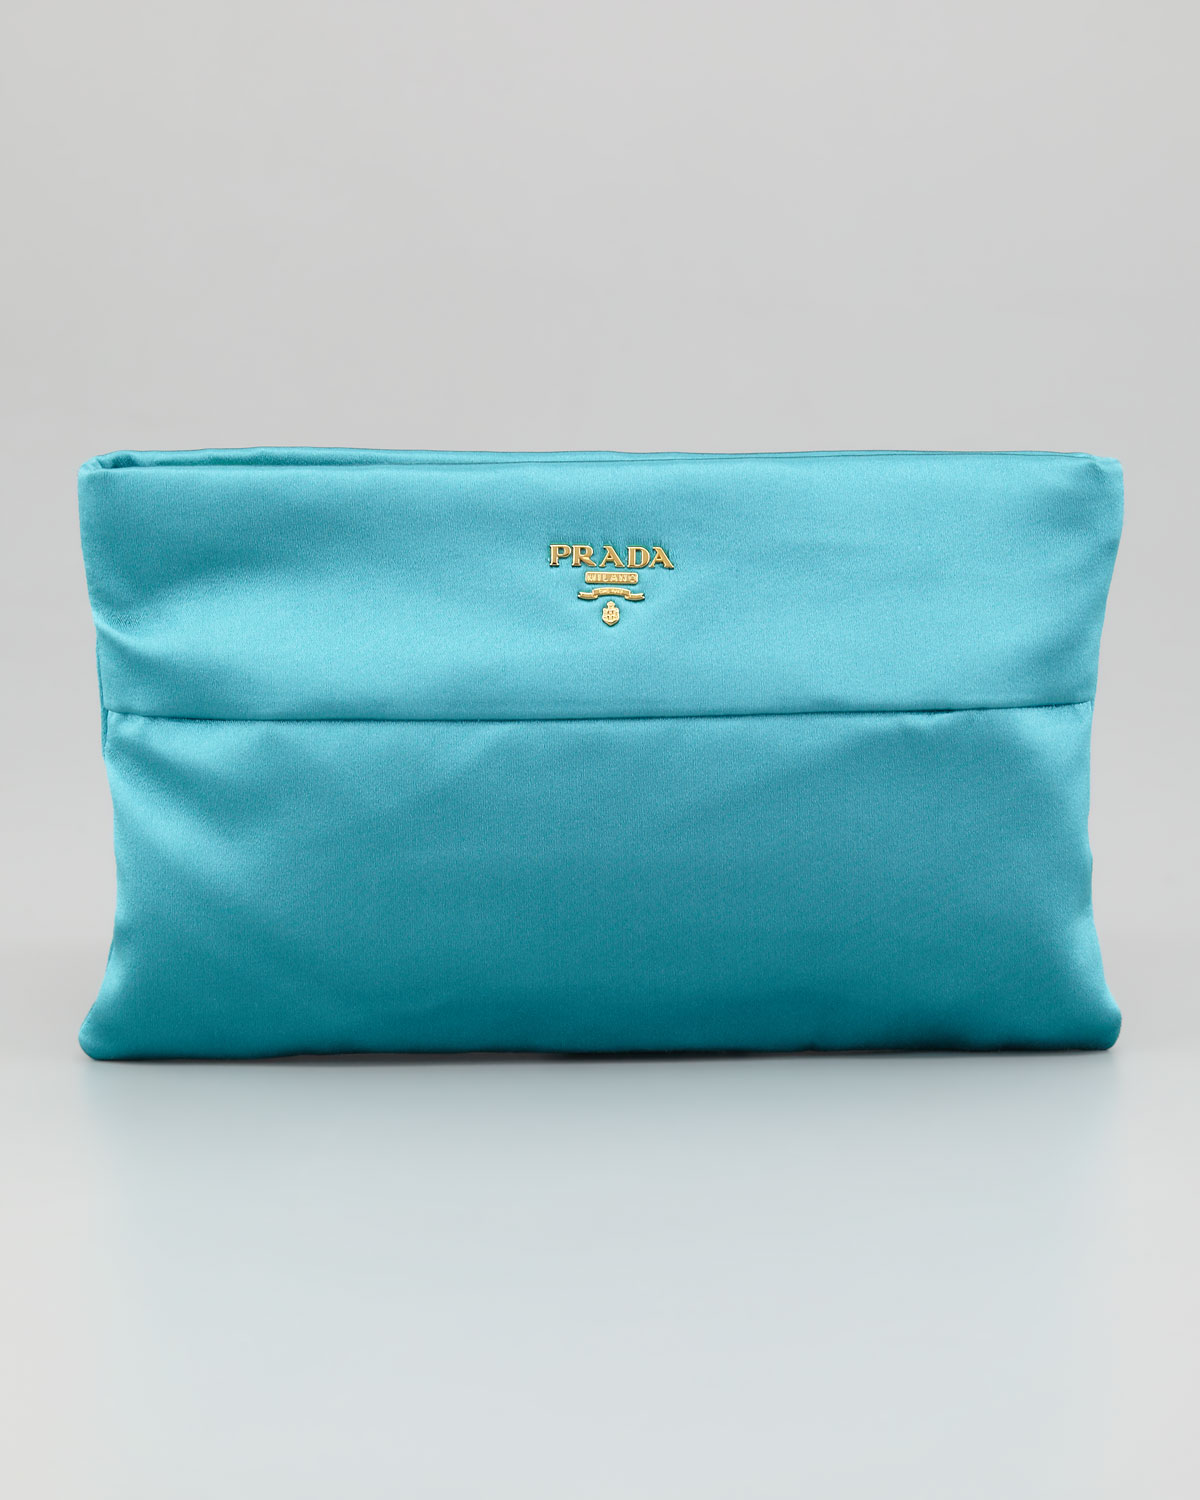 Prada Satin Clutch Bag in Blue (turquoise) | Lyst